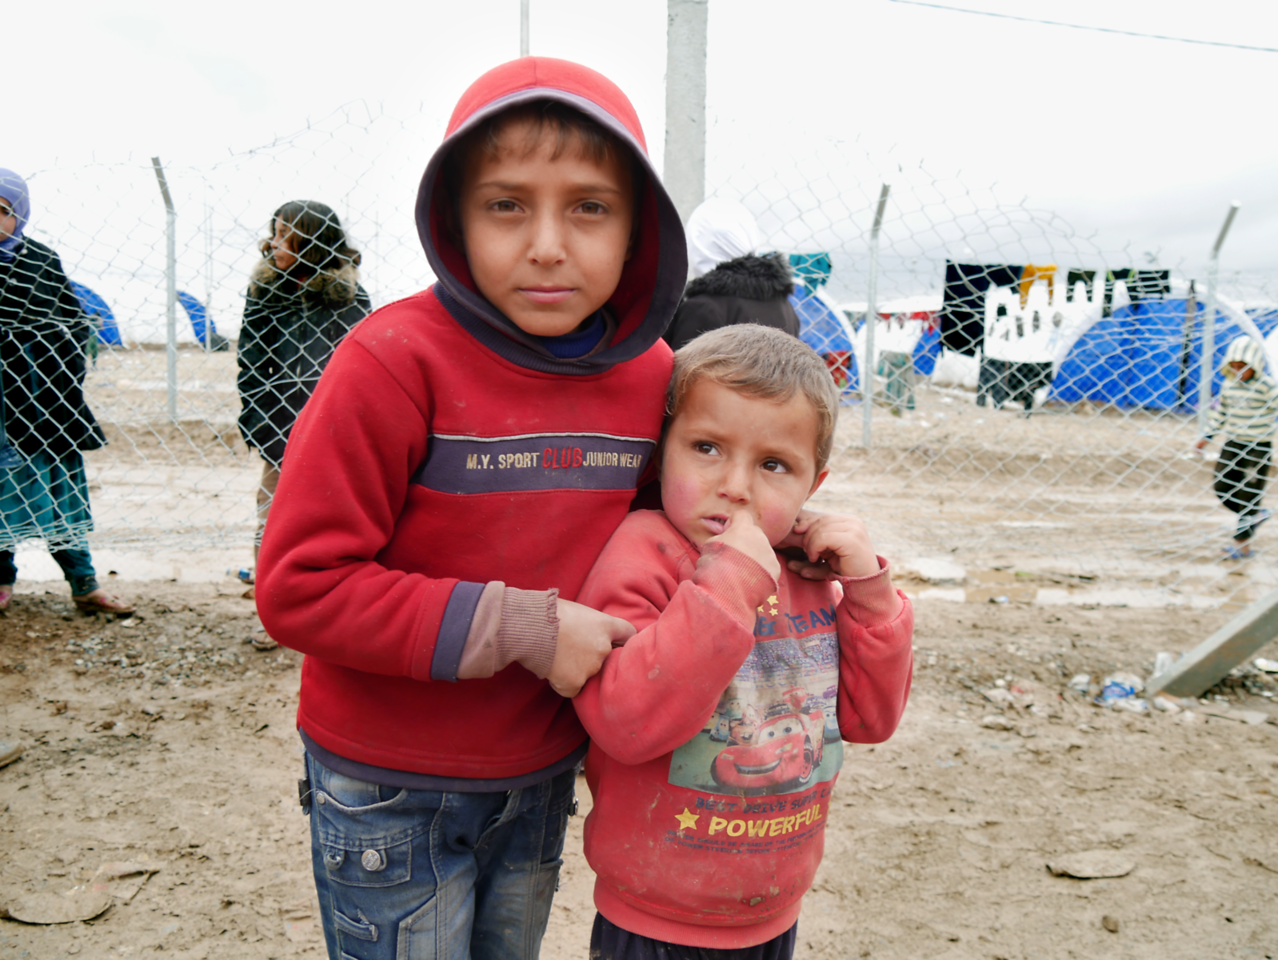 Brothers Razwan(2) and Salah(5), originally from Mosul, have been forced to leave everything behind. They now live in a displaced camp in Hamam al-Alil where NRC provides food, water and temporary accommodation. Date:16 March 2017 Photo: Alan Ayubi